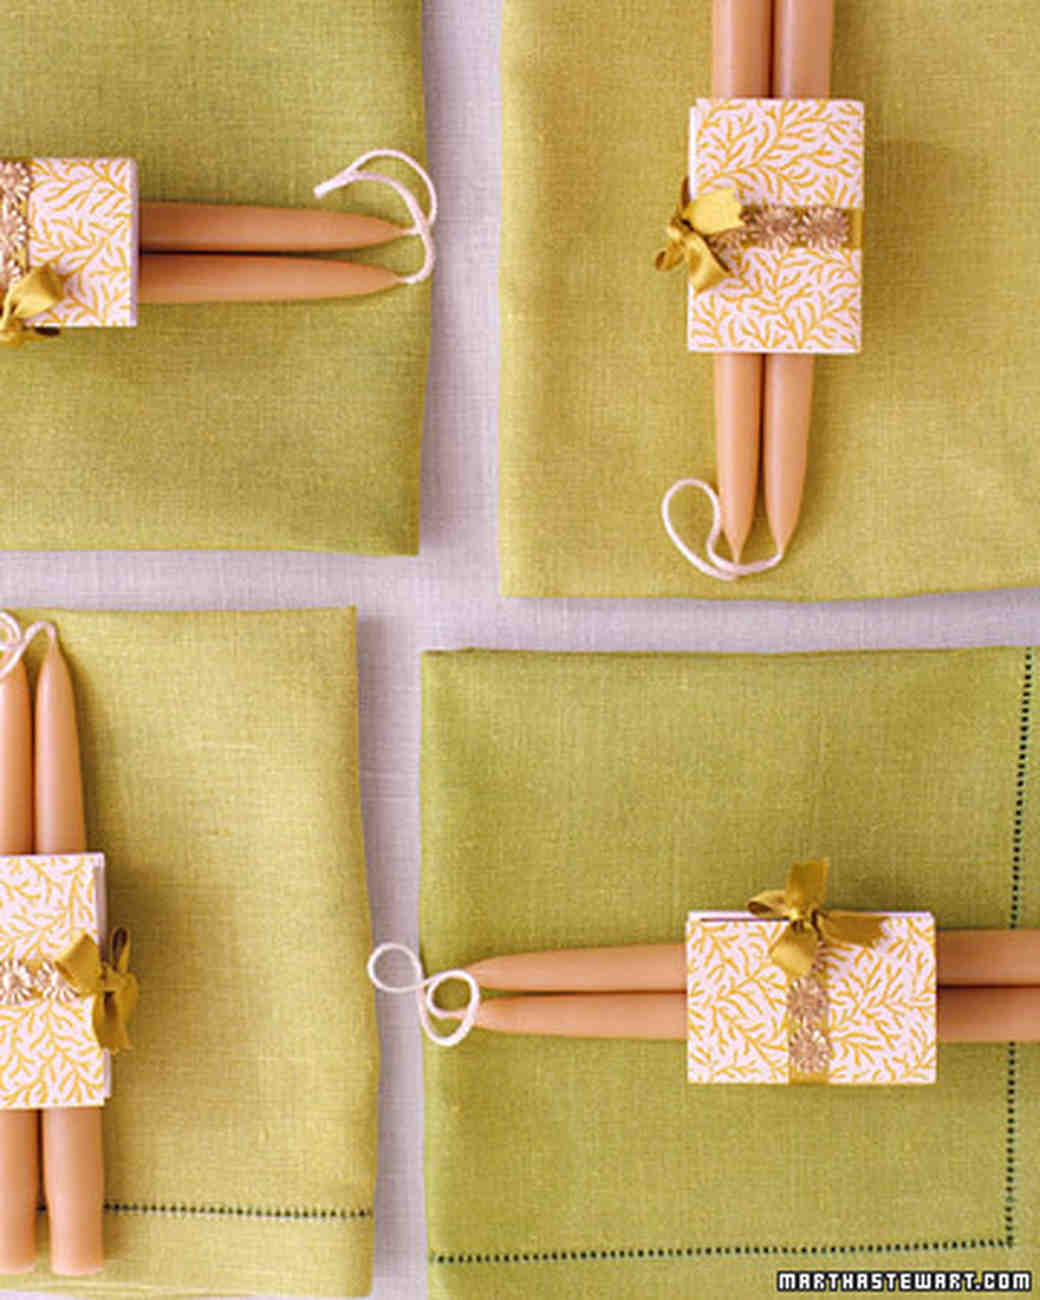 100 Cheap Wedding Favour Ideas For Under 1 Each: Good Things: Wedding Favors